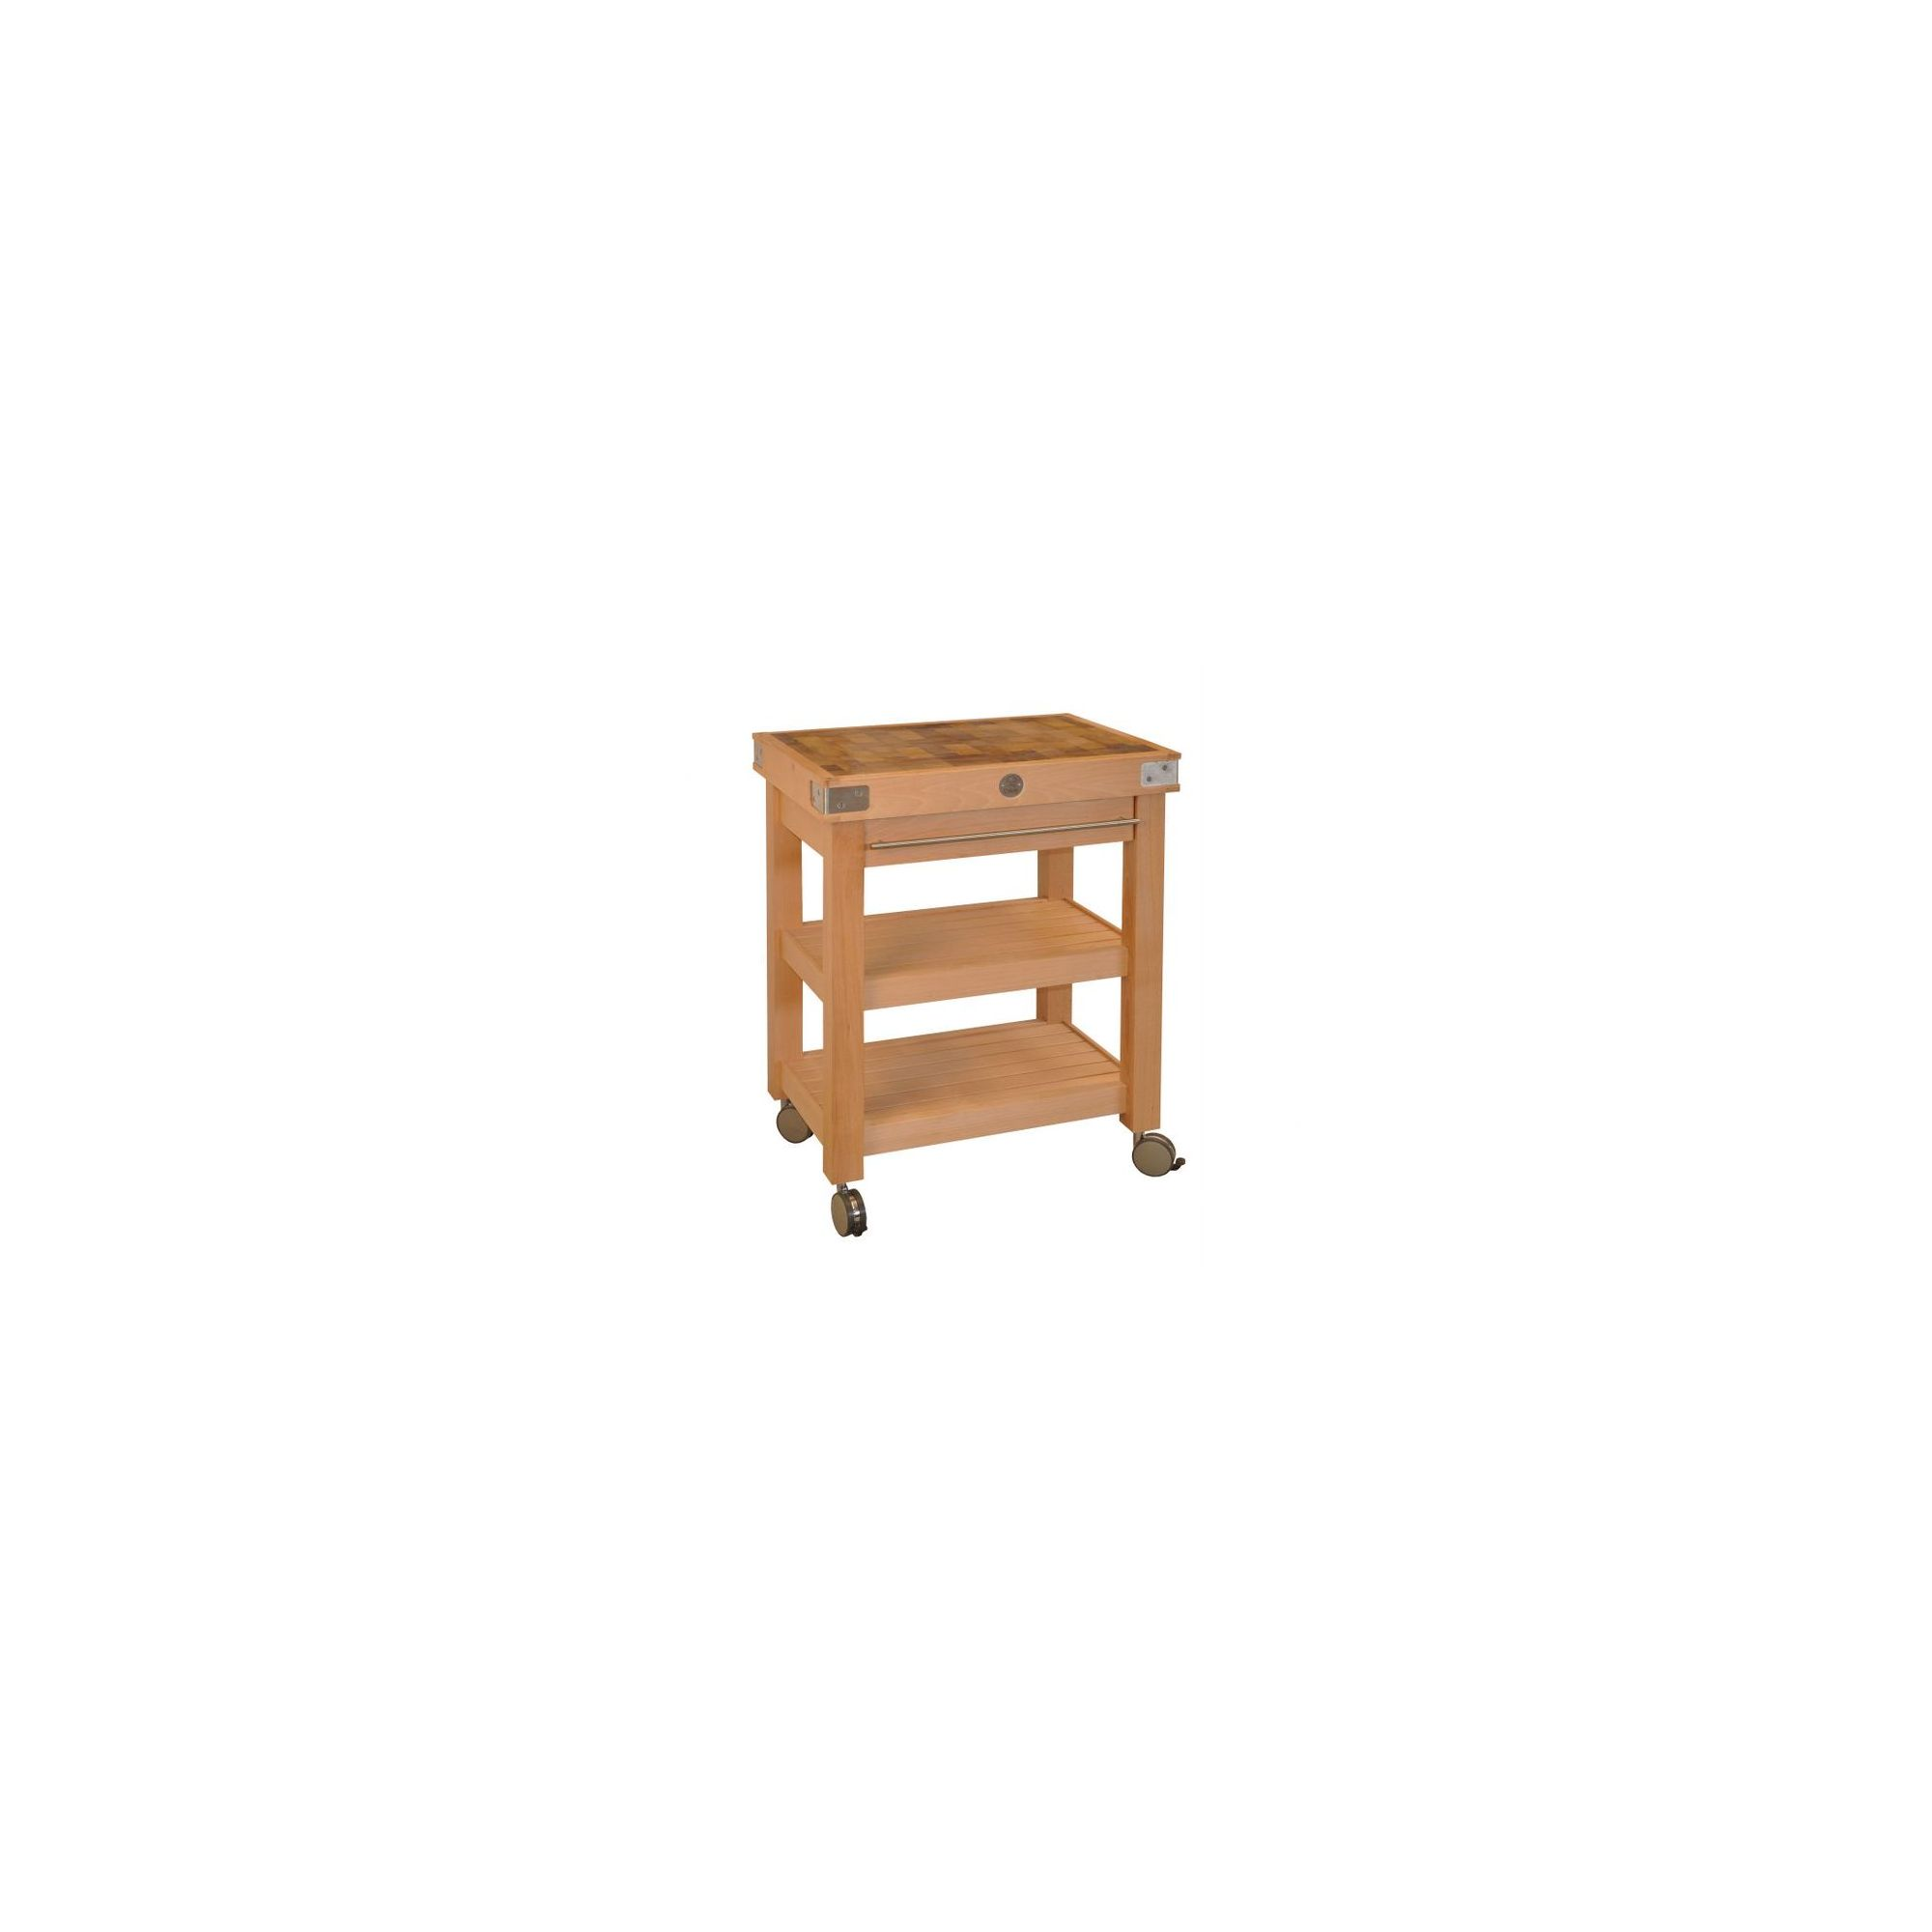 Chabret Double Stages Kitchen Cart - 85cm X 70cm X 50cm at Tesco Direct